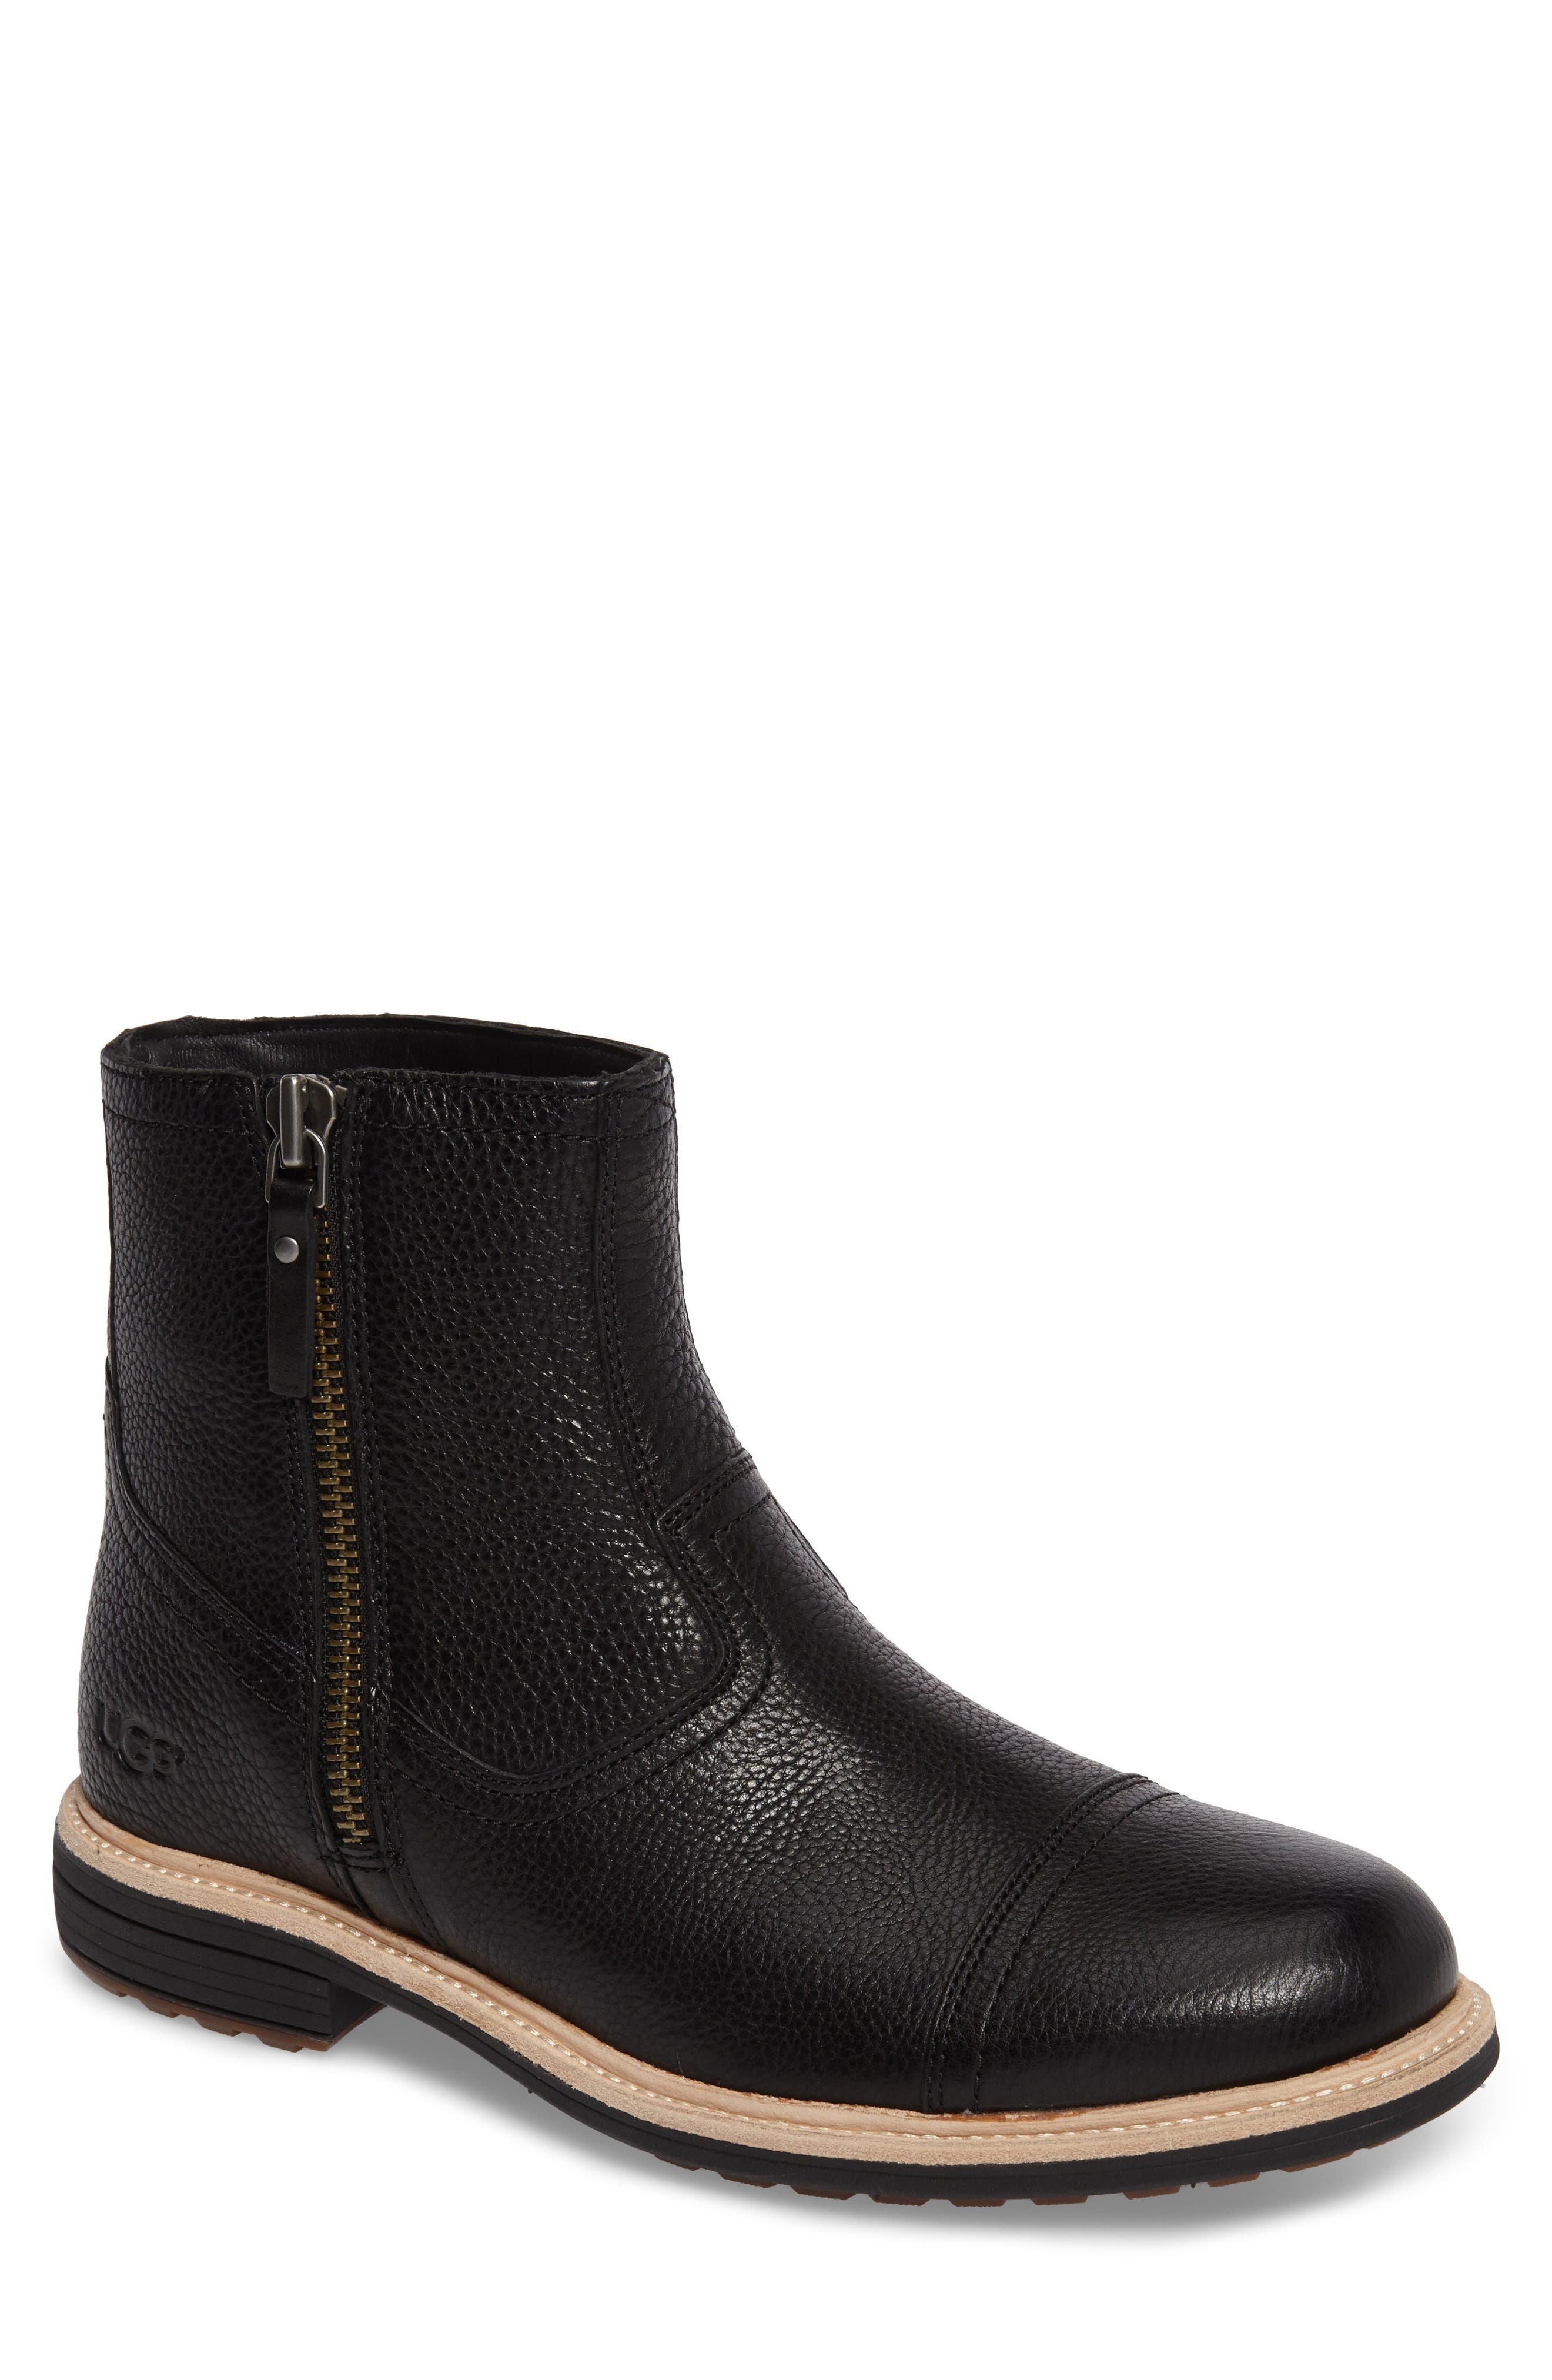 Dalvin Zip Boot with Genuine Shearling,                             Main thumbnail 1, color,                             BLACK